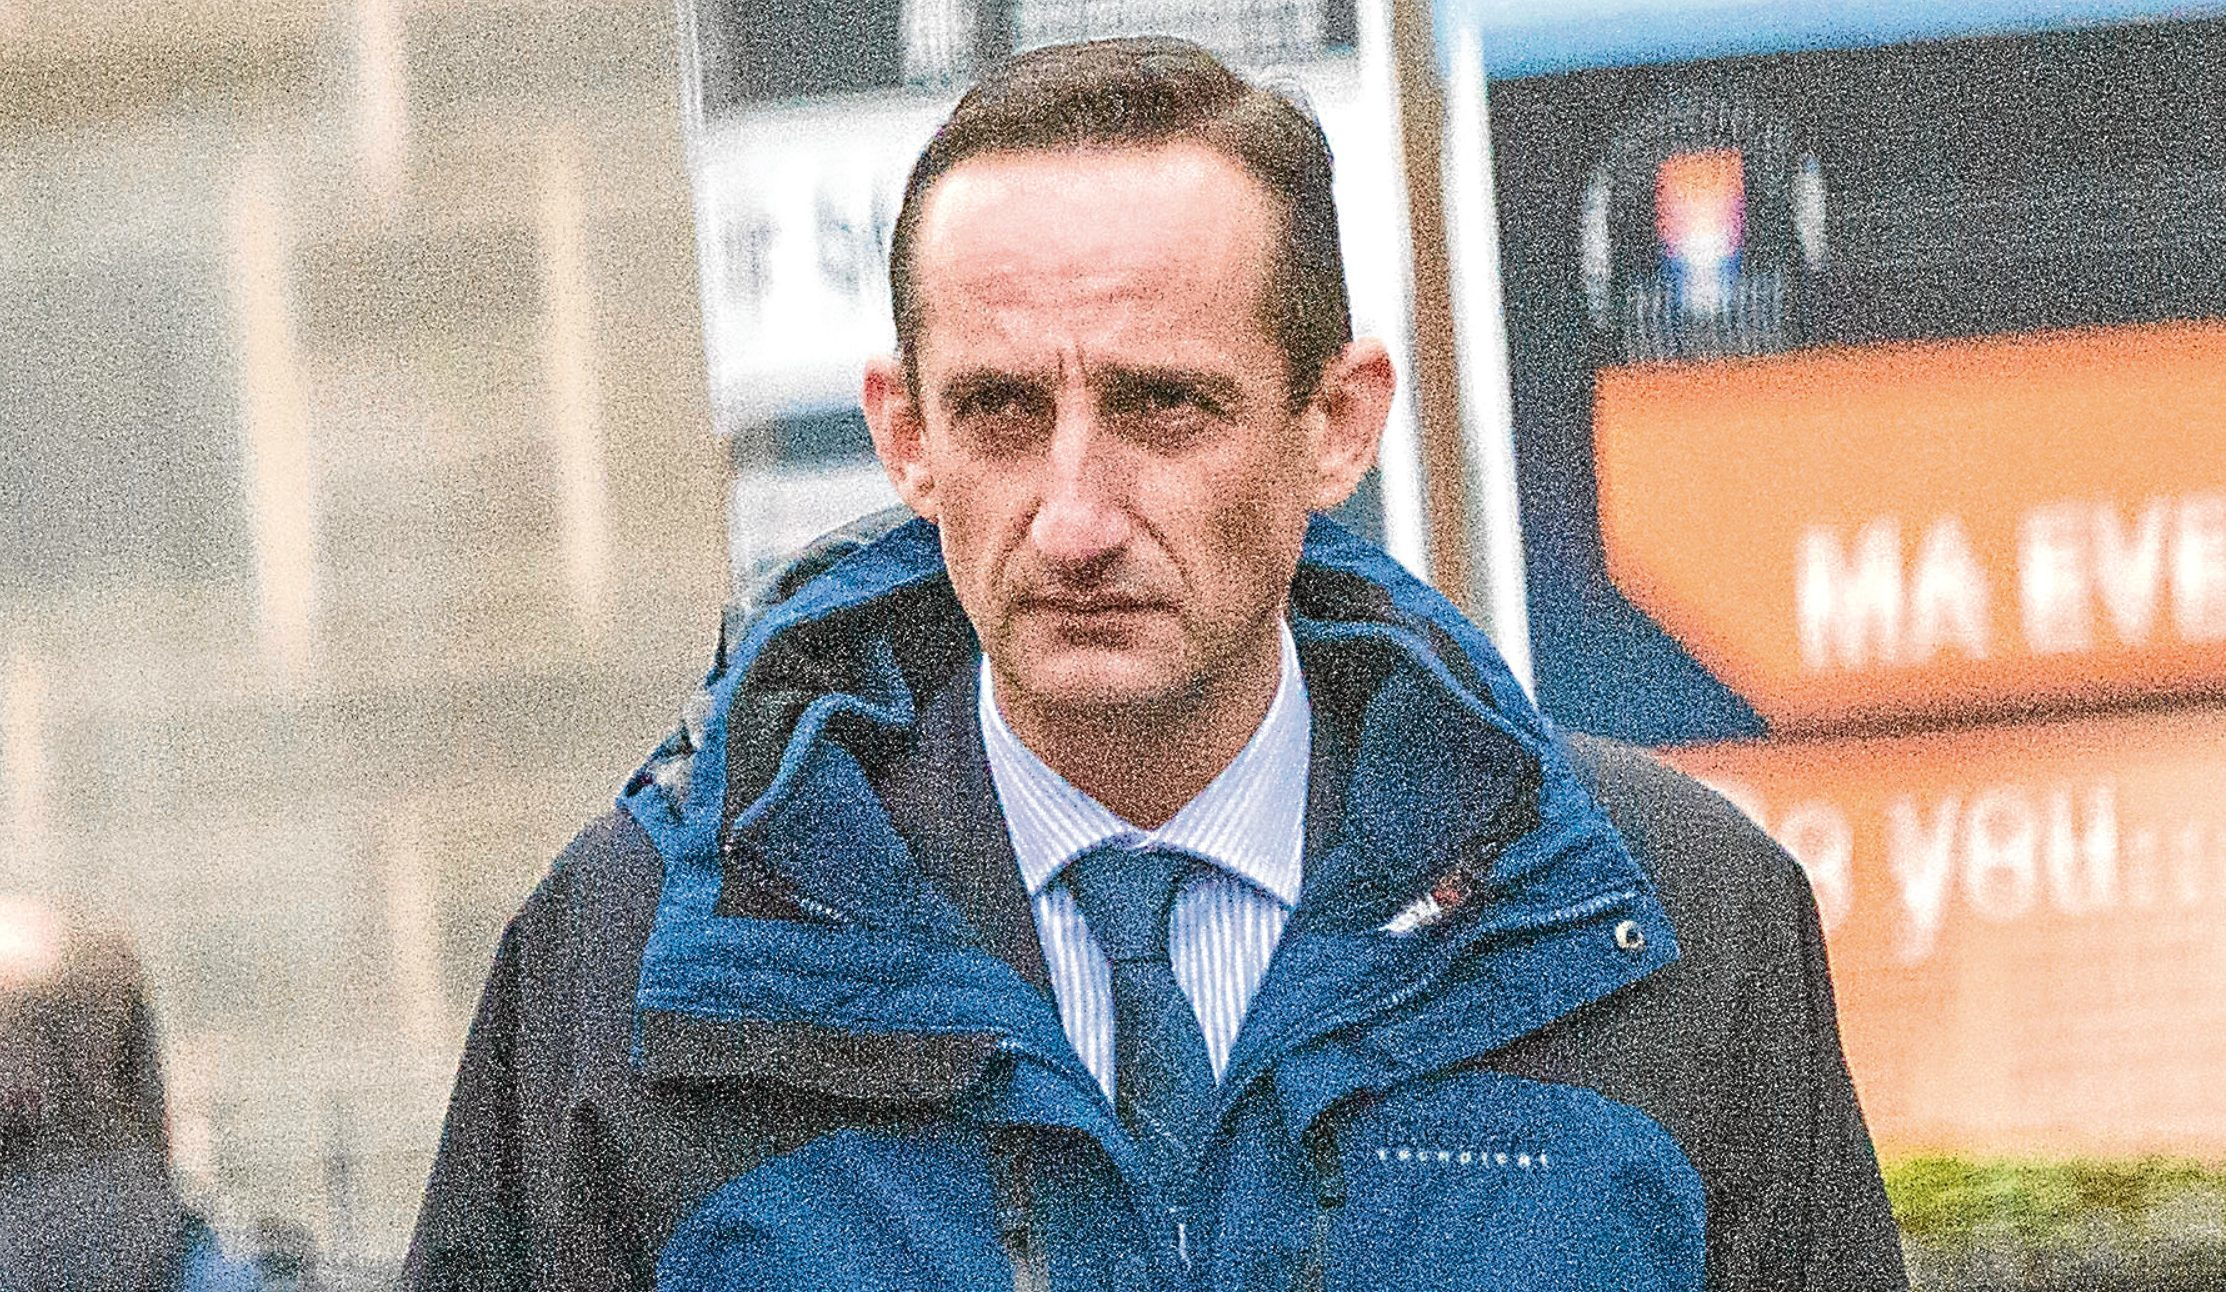 Clive Weatherhogg, who is appealing his conviction